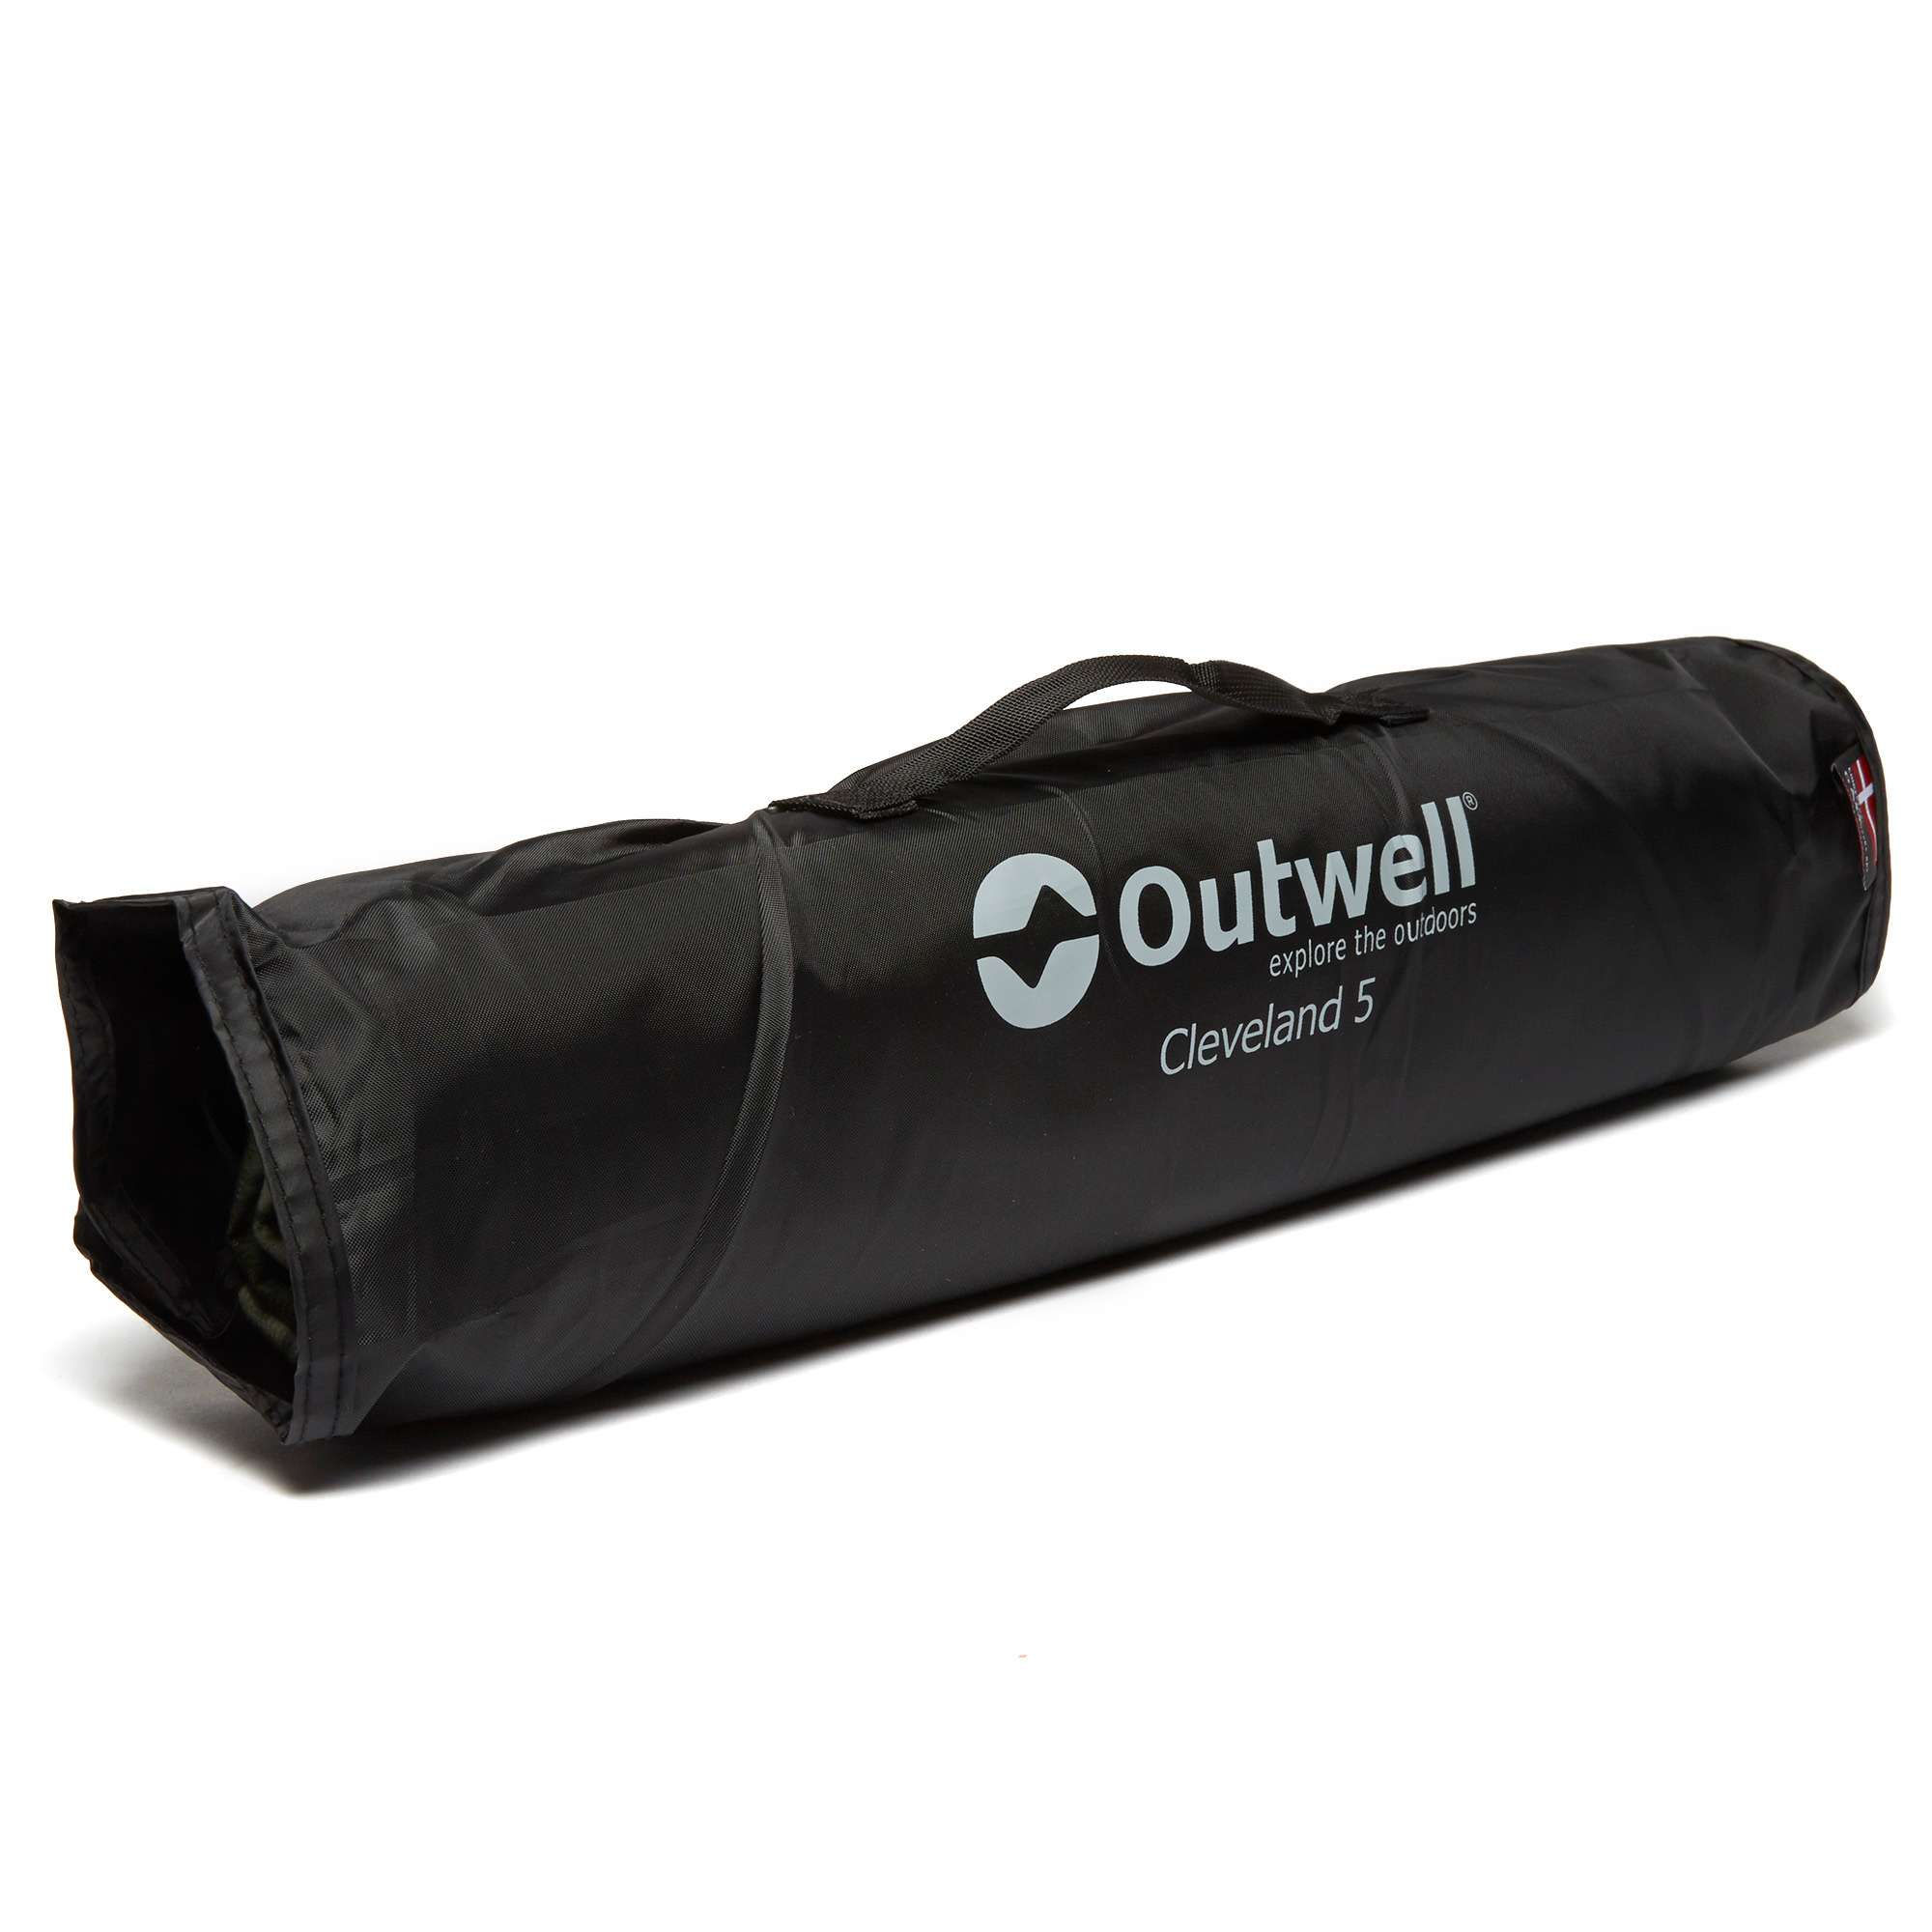 OUTWELL Cleveland 5 Carpet